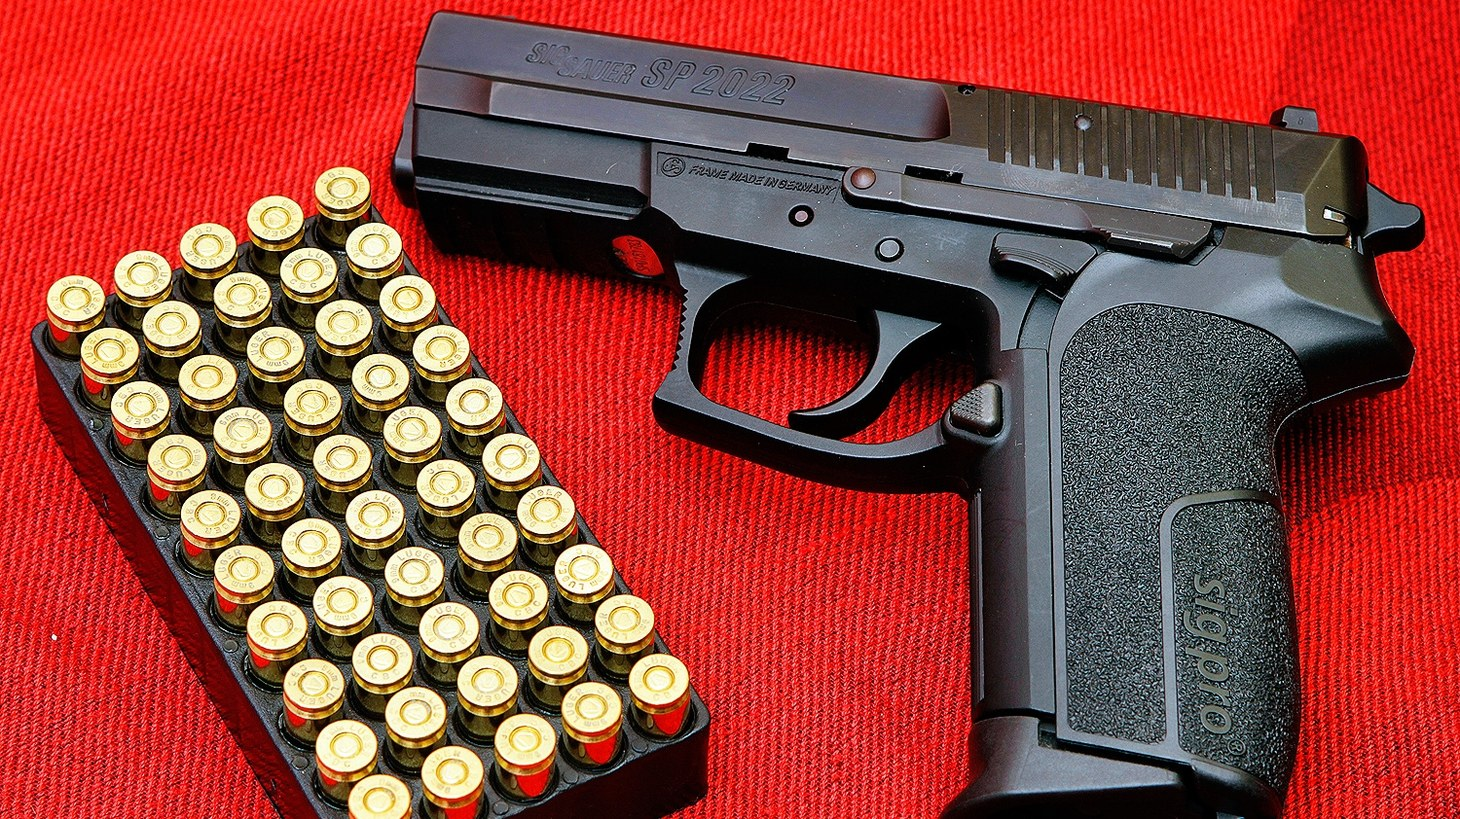 SIG Pro semi-automatic pistol (SP 2022 variant) depicted alongside a box of 9×19 Luger ammunition. UC Davis researchers found that about 110,000 new firearms were purchased statewide through mid-July.